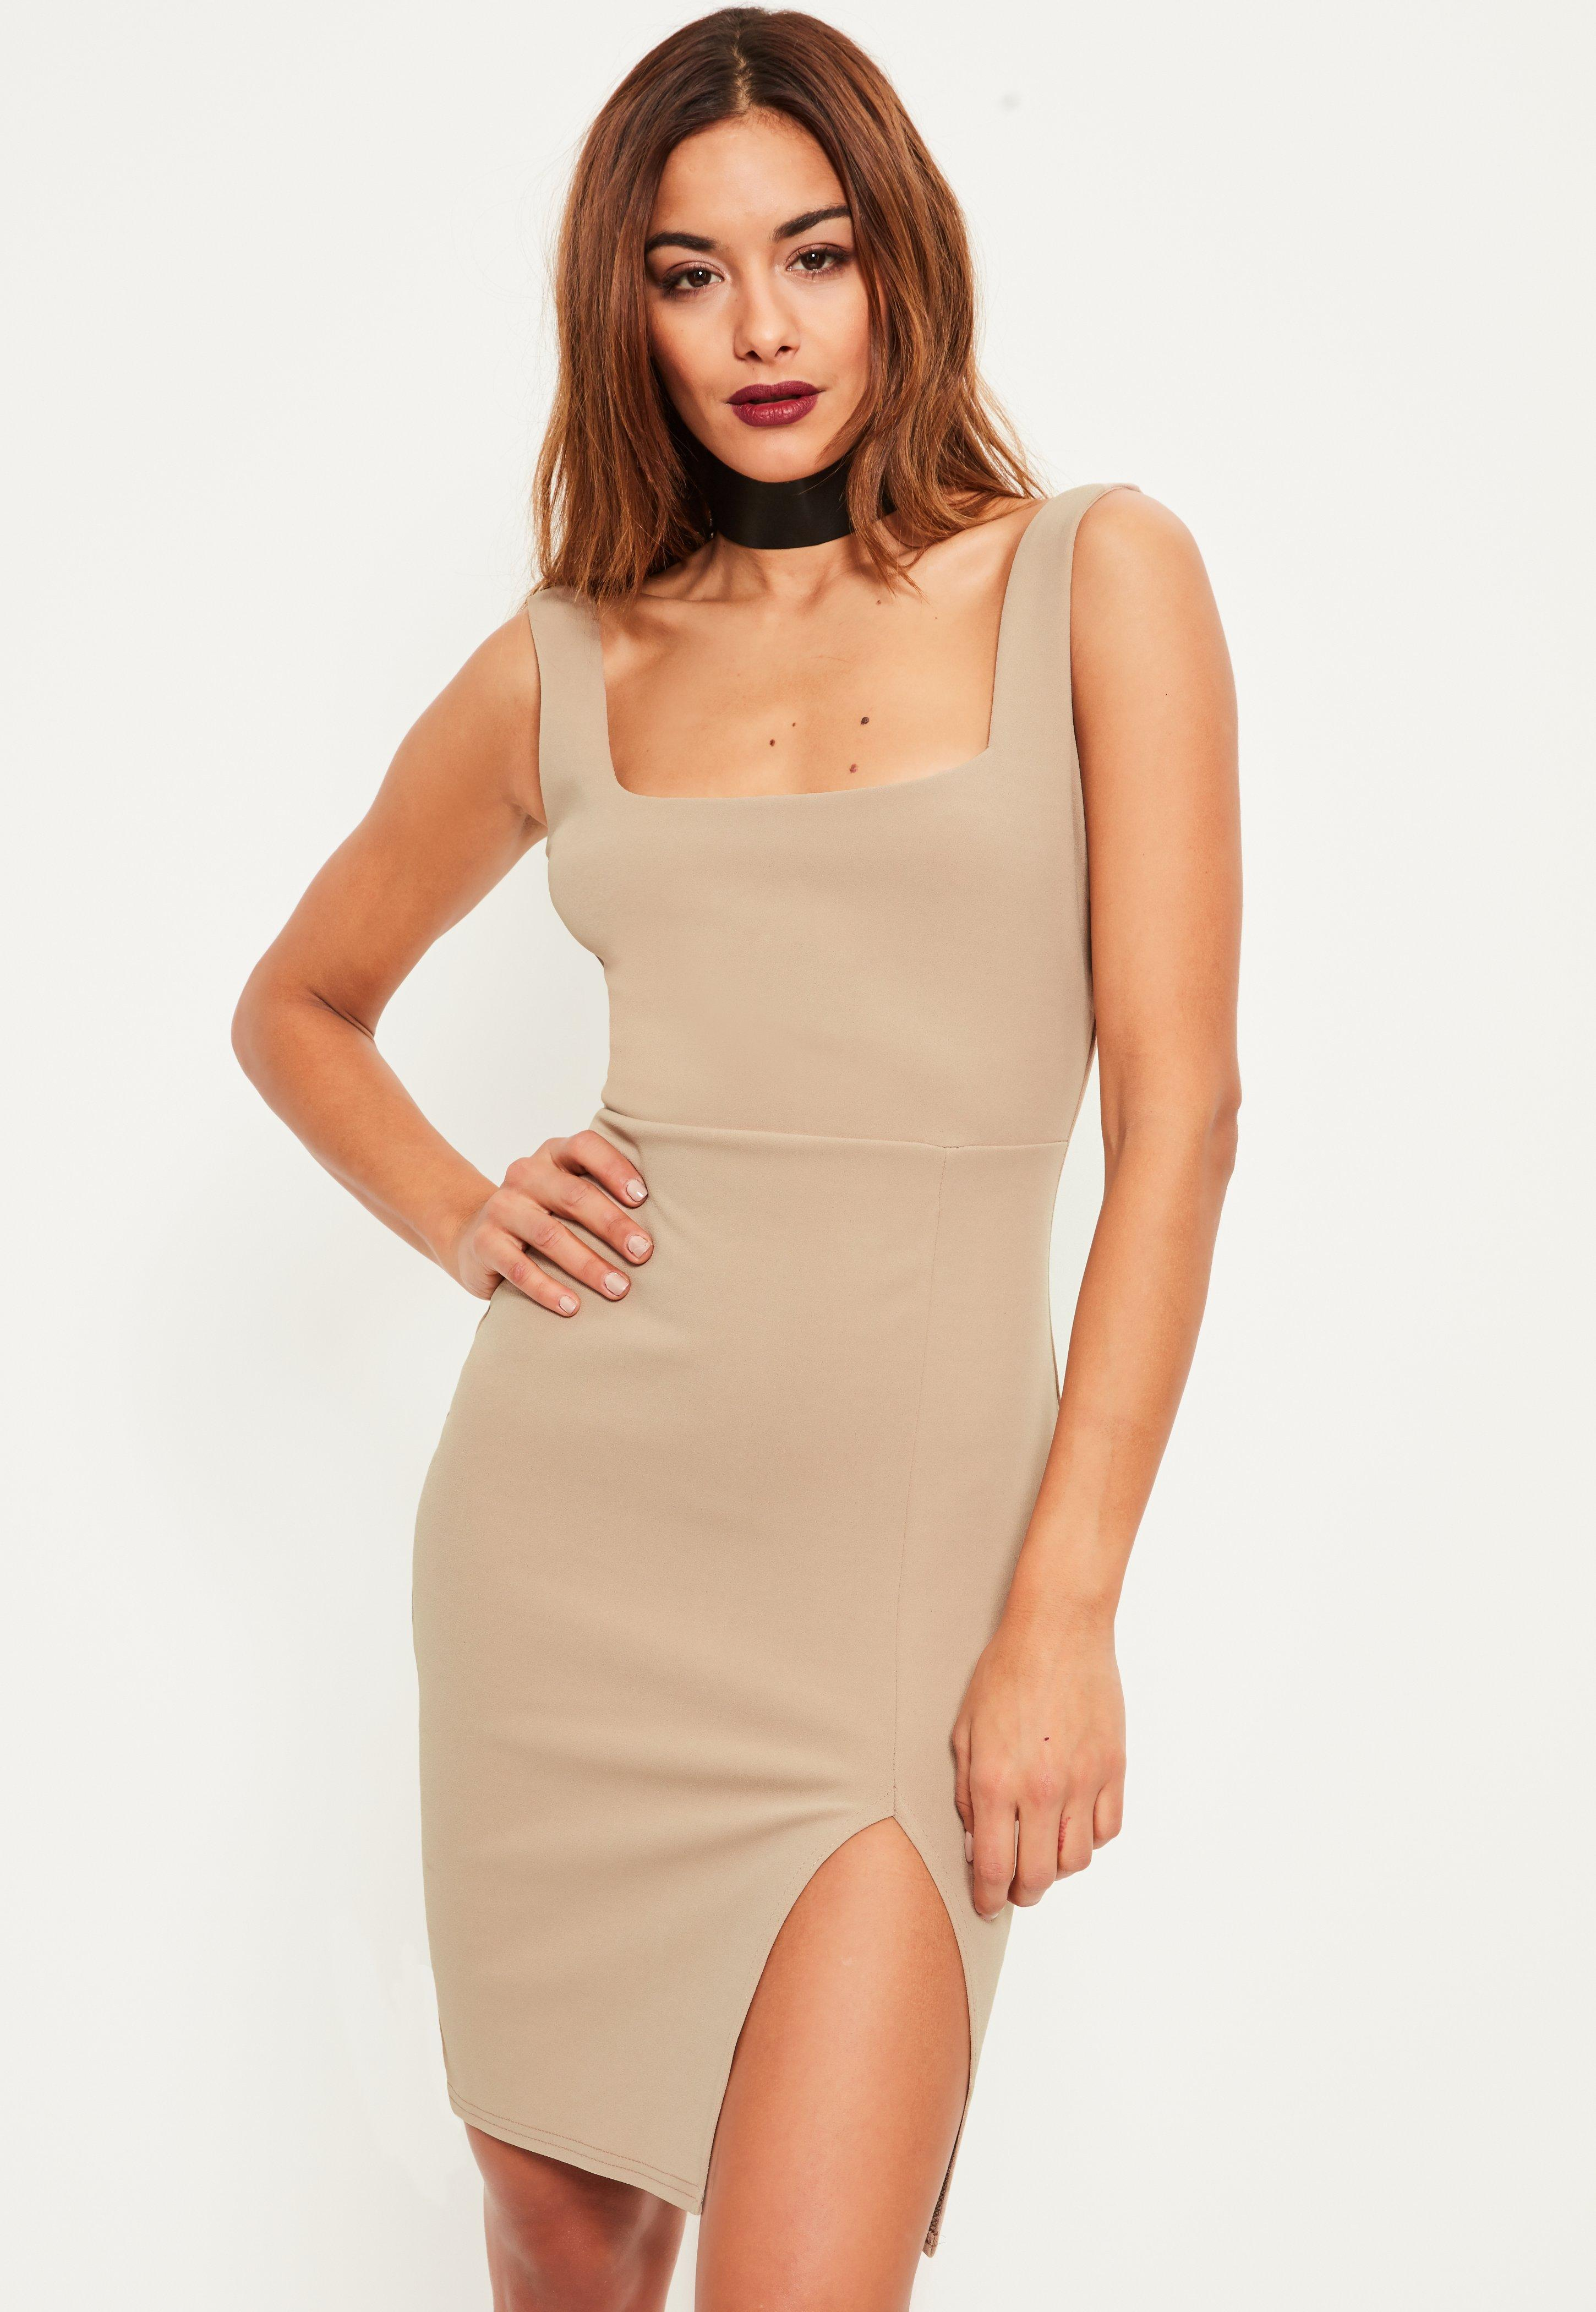 96b2ddecb98c2 Missguided Nude Square Neck Side Split Mini Dress in Natural - Lyst